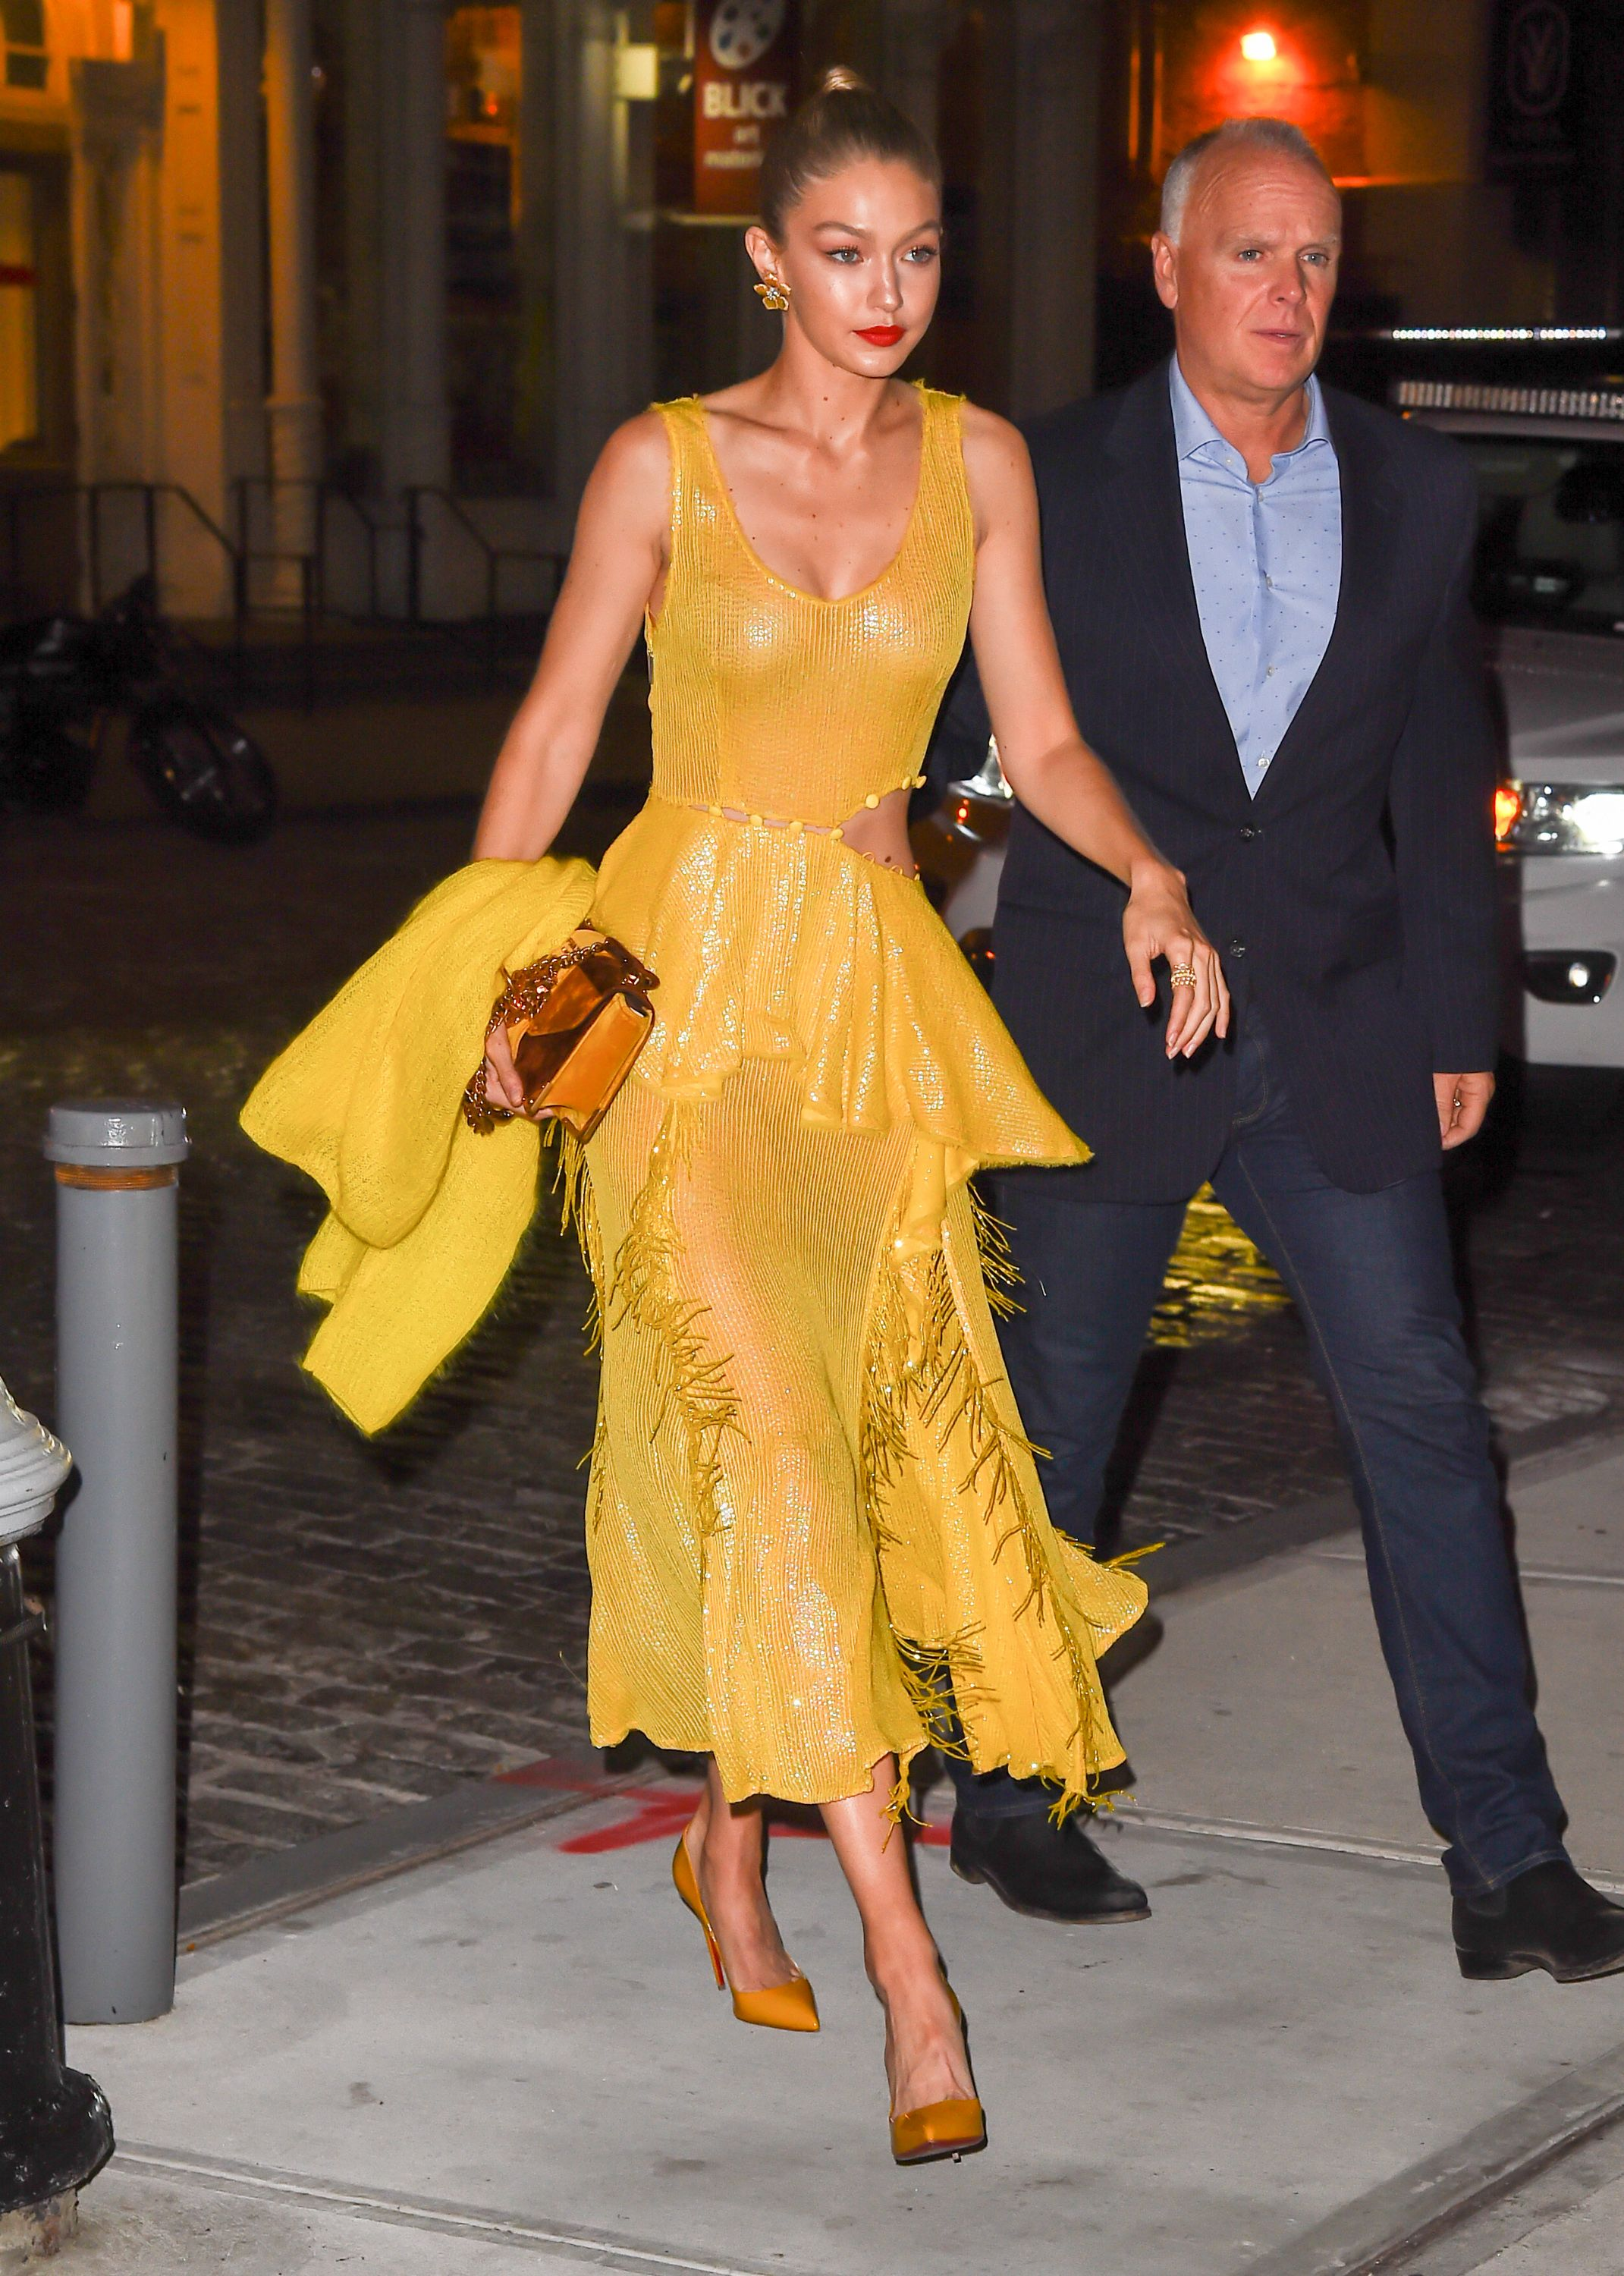 October 16, 2017 After modeling a red version of this Prabal Gurung dress on the Spring 2018 runway, Hadid stepped out in a yellow option. The sequin–and–fringe number features a sexy side cutout, making it the perfect red carpet premiere dress (she was on her way to support Blake Lively's film All I See is You ) .